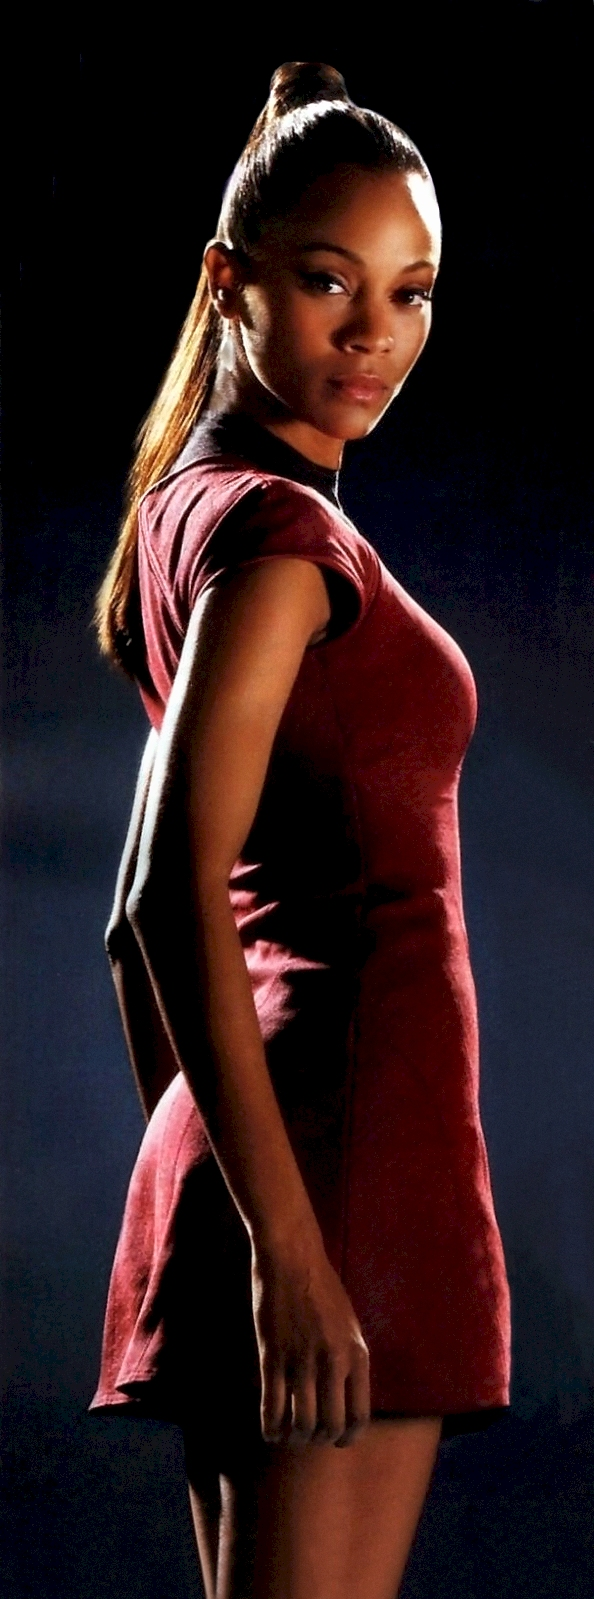 Zoe Saldana Star Trek Sex 58